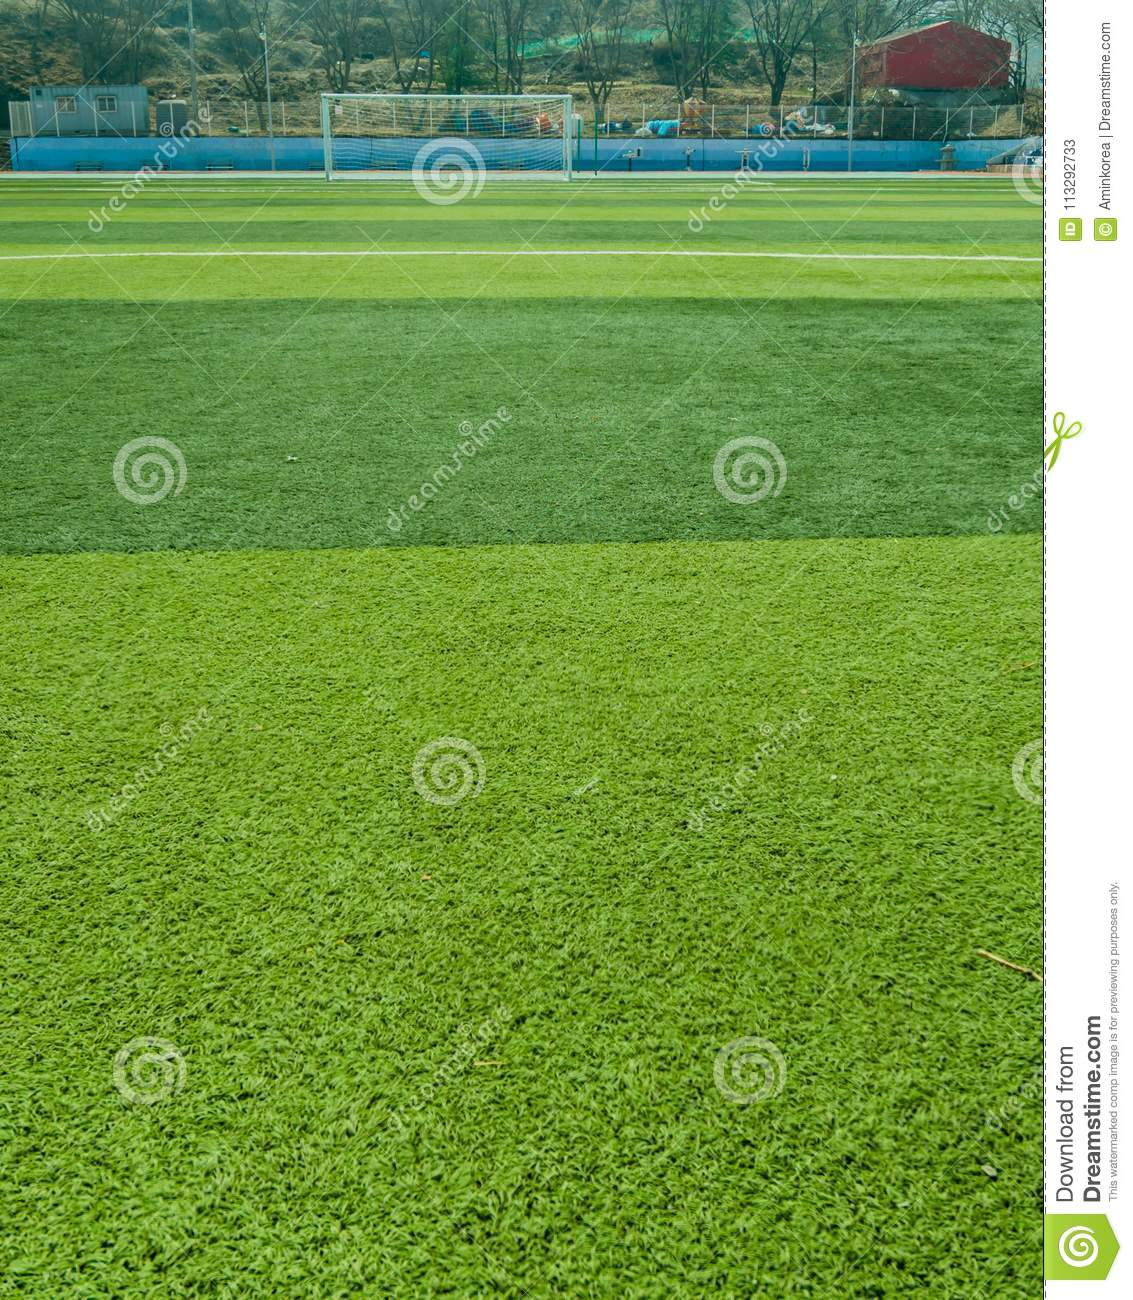 Sports field covered with green artificial grass